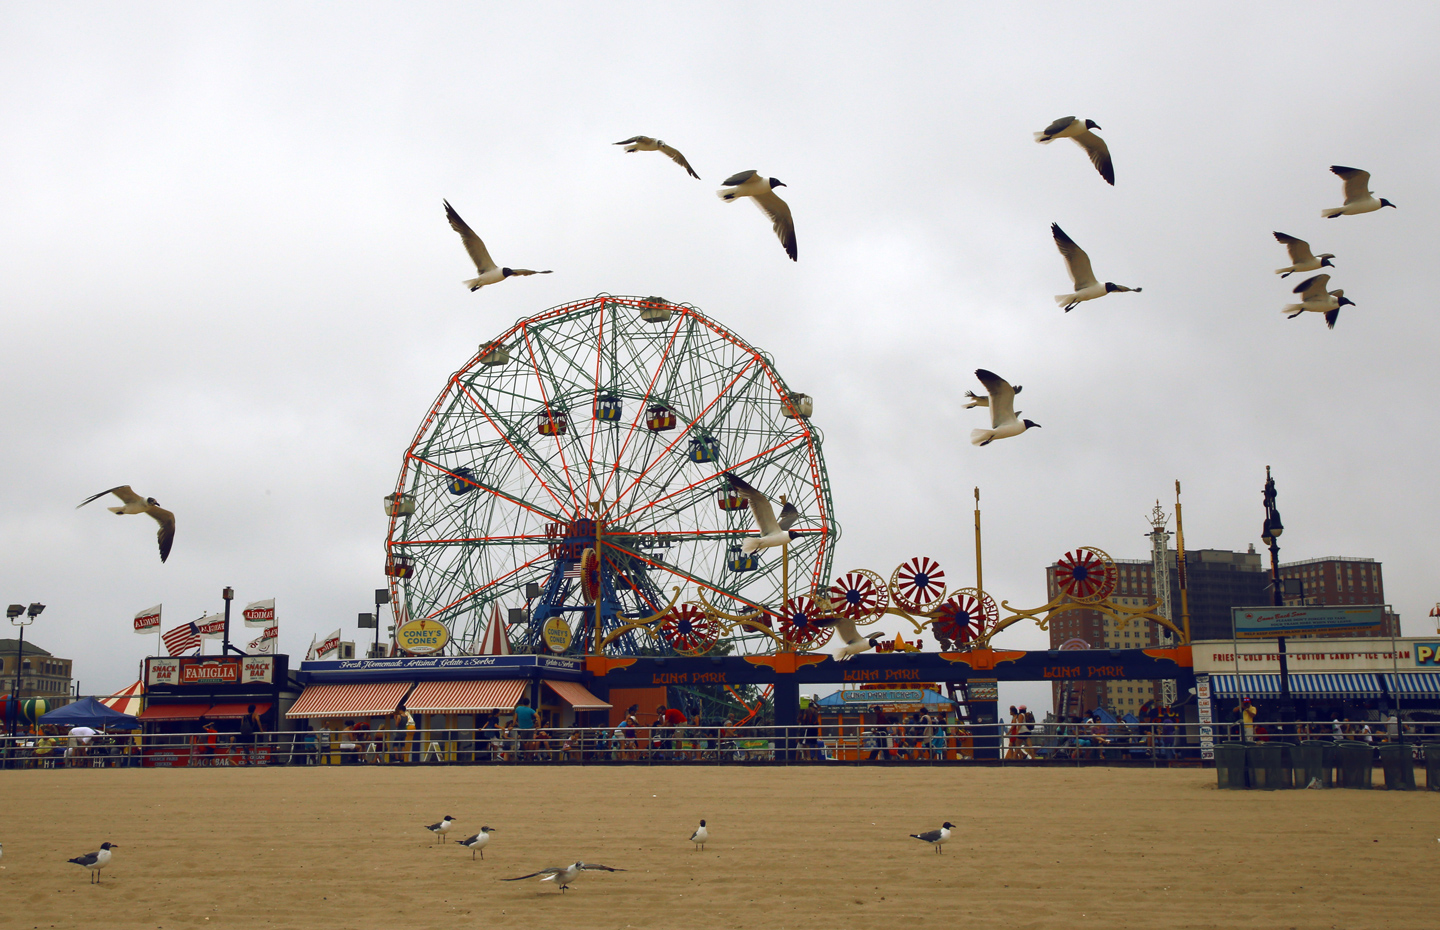 Luna park with seagulls flying in Coney Island